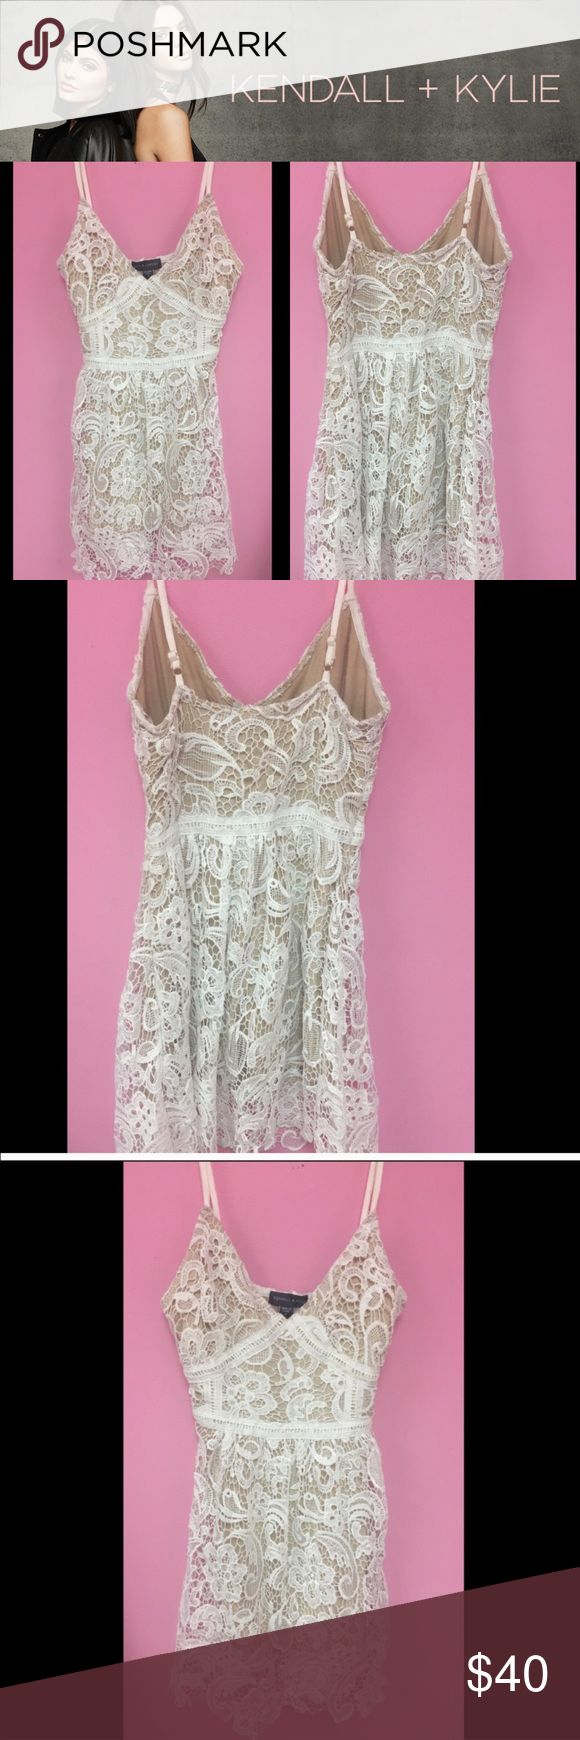 KENDALL & KYLIE Lace White Dress Please feel free to leave a comment below for the questions :) Kendall & Kylie Dresses Mini